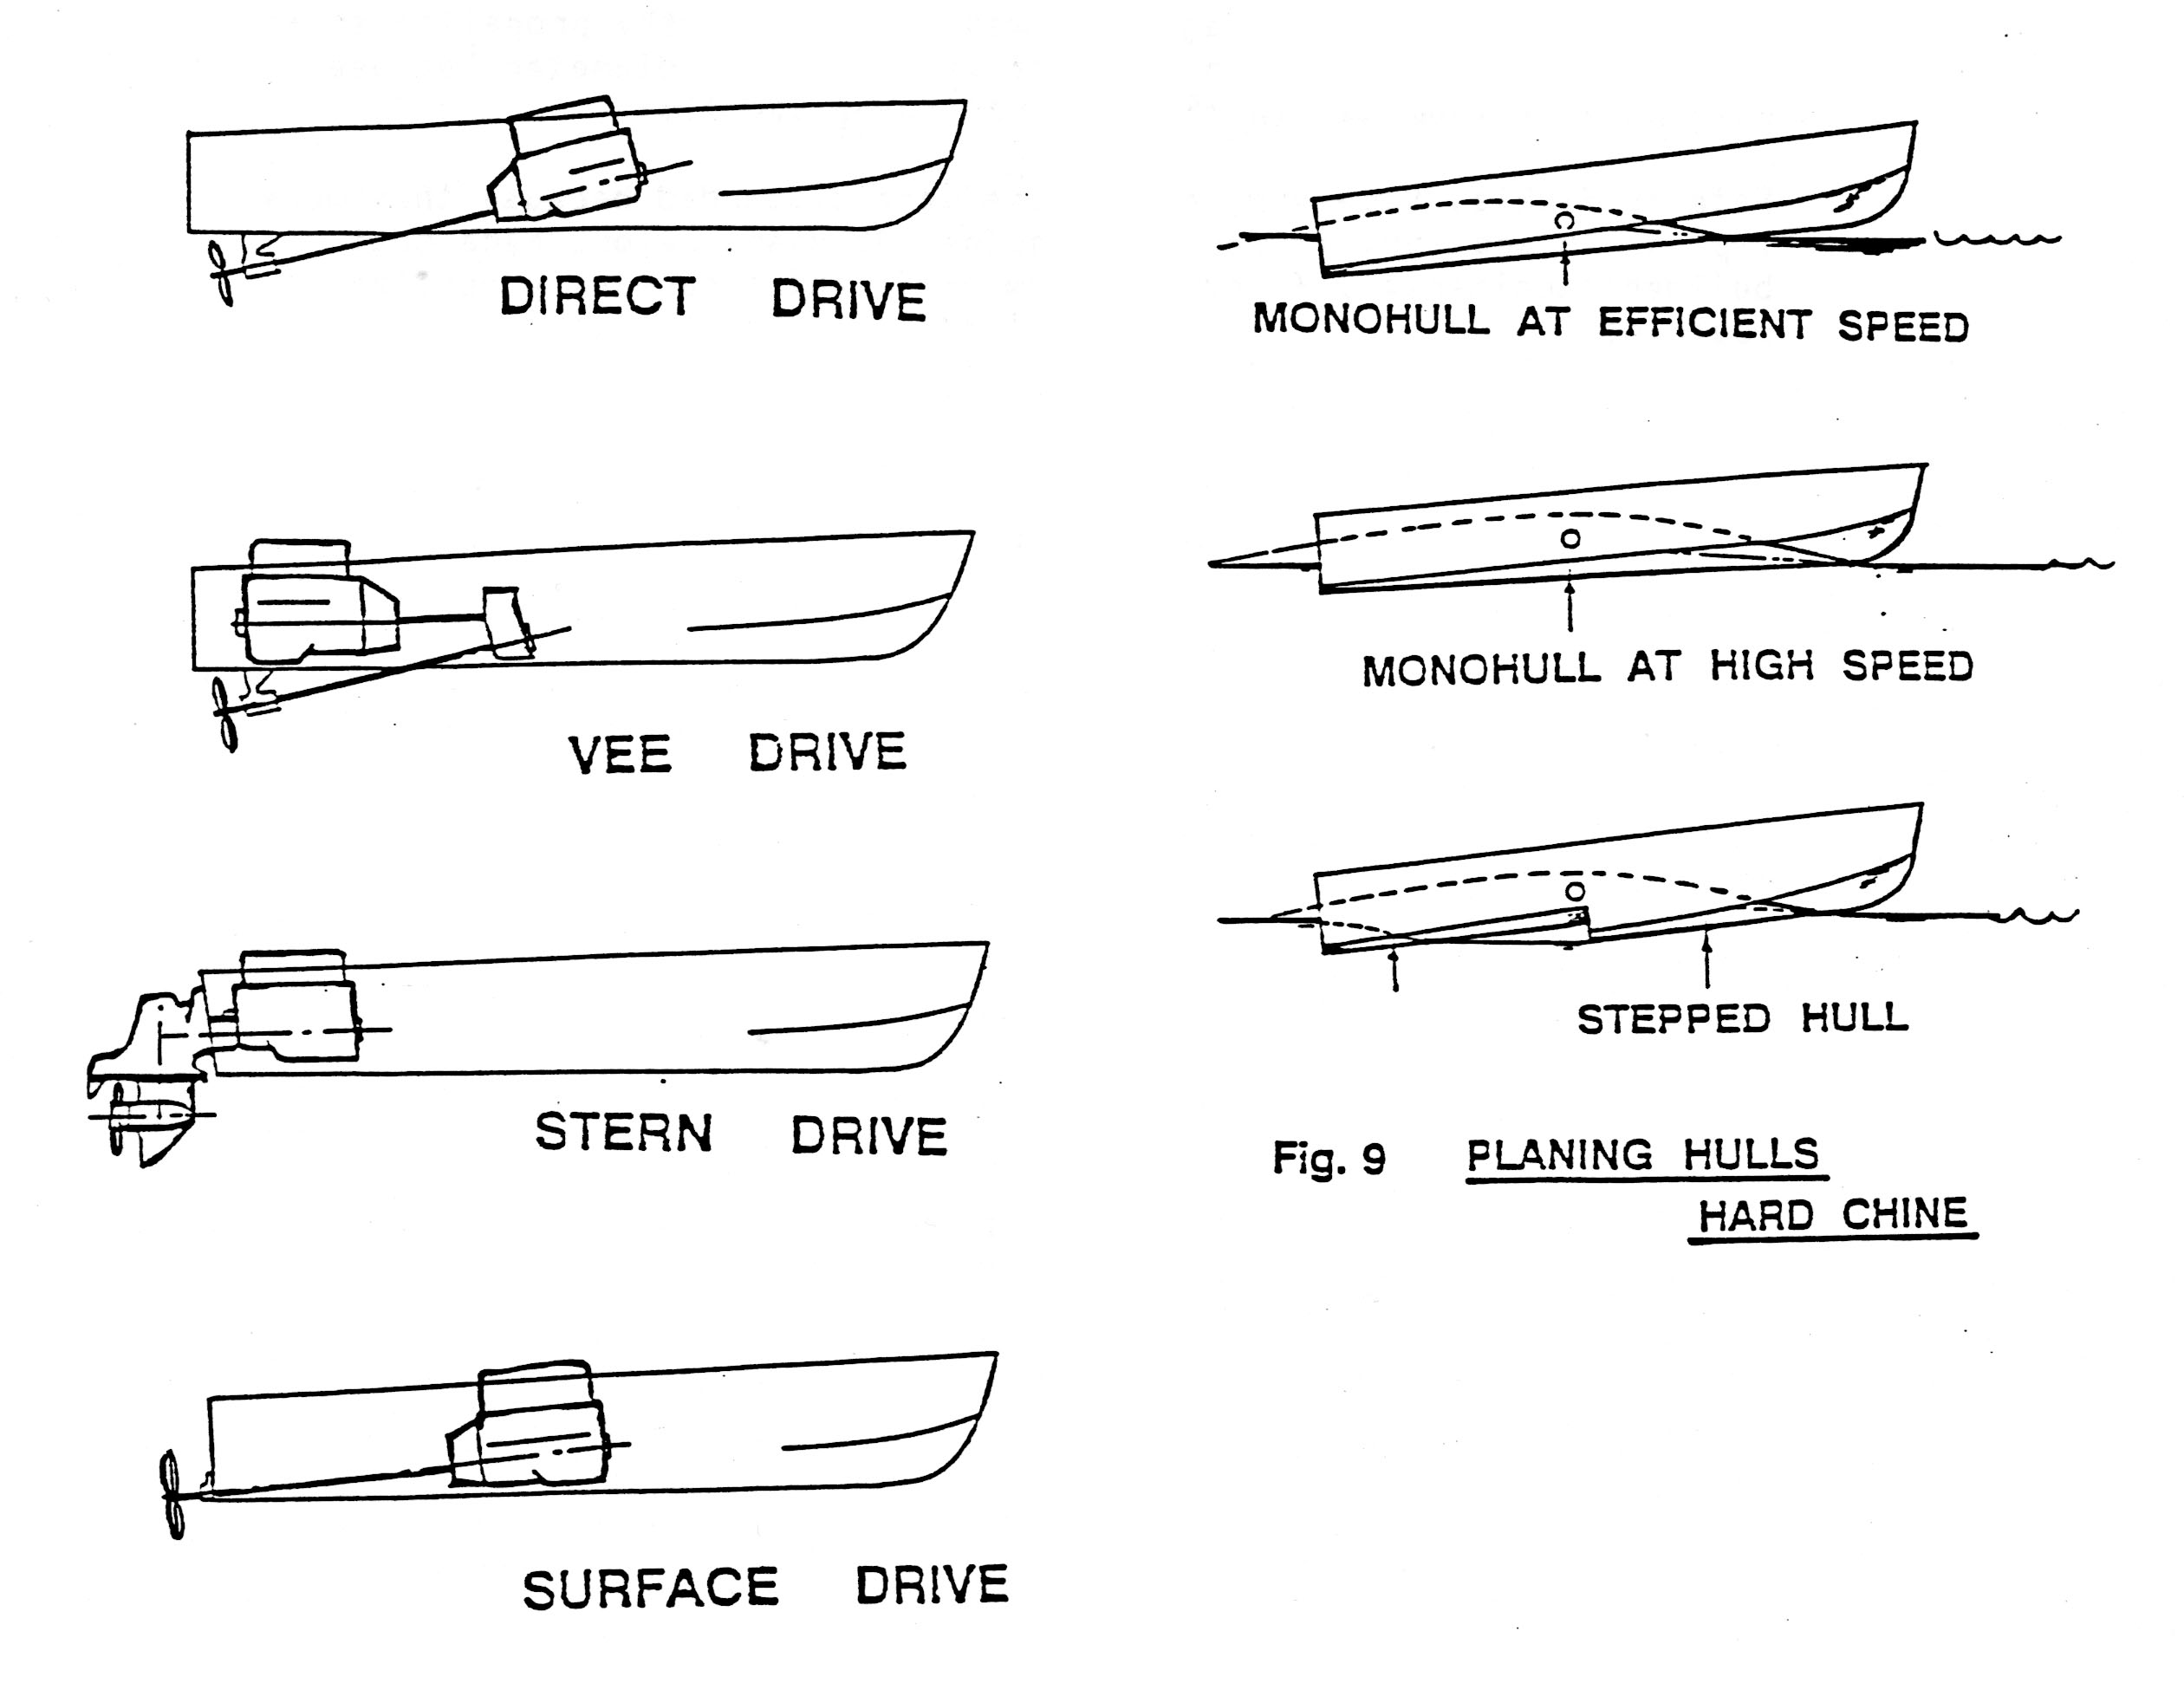 Drives and Hulls